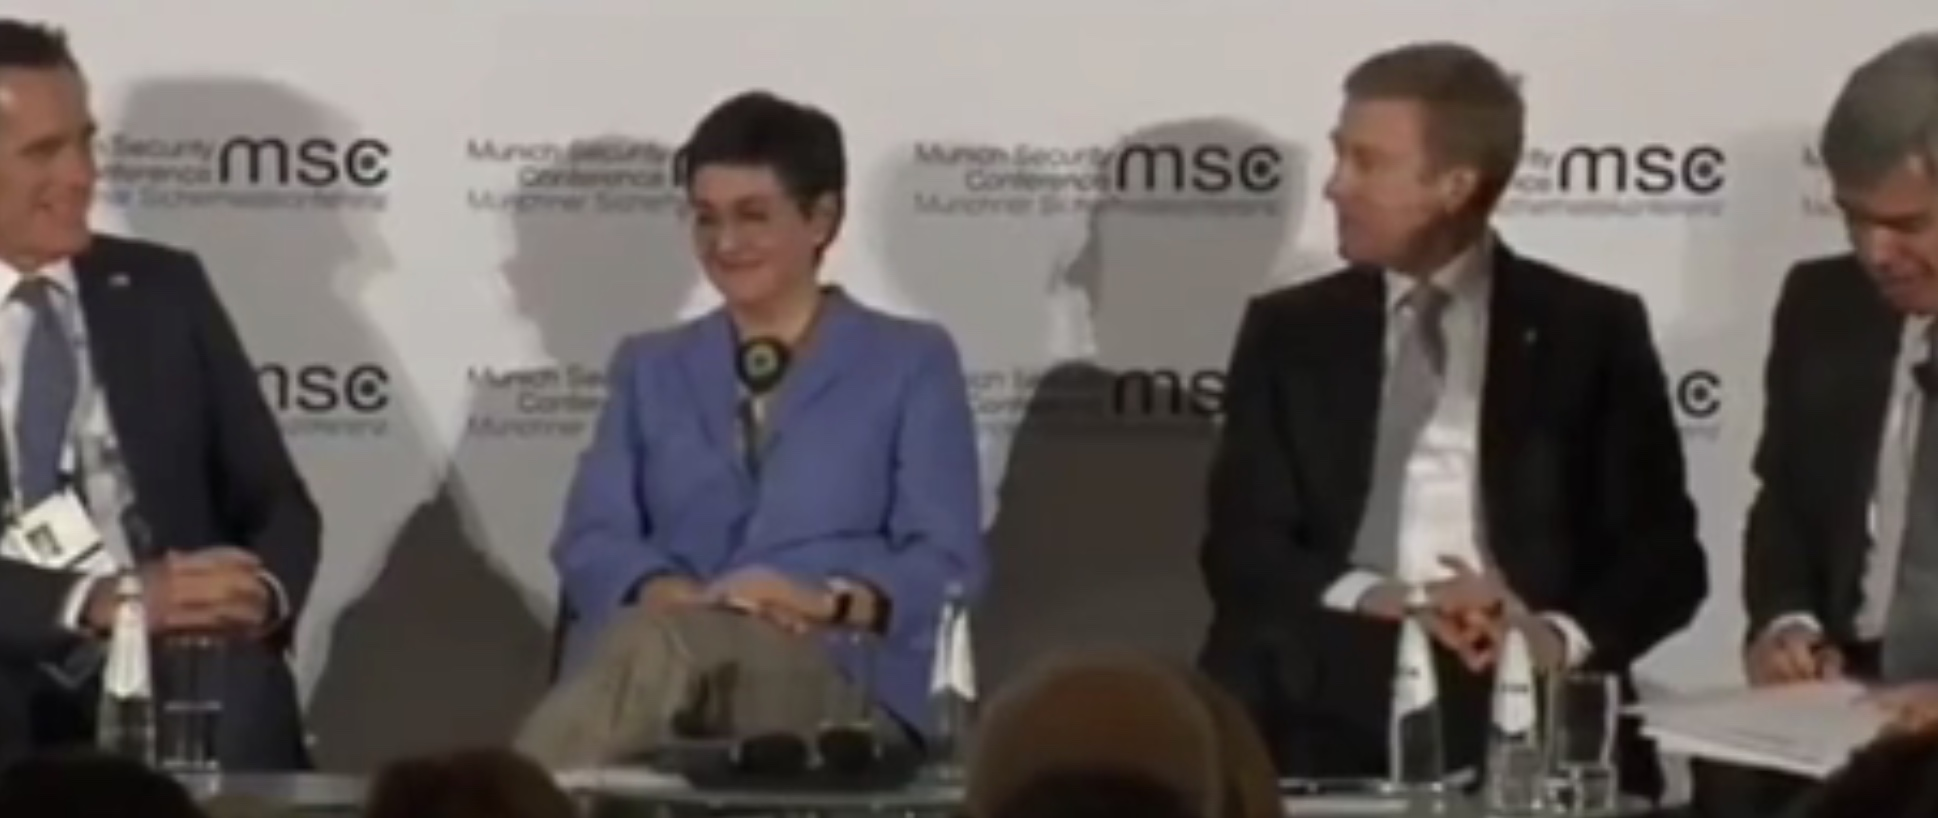 Romney Applauded After Panel Moderator Refers To Him As 'Probably The Most Courageous Lawmaker' In US